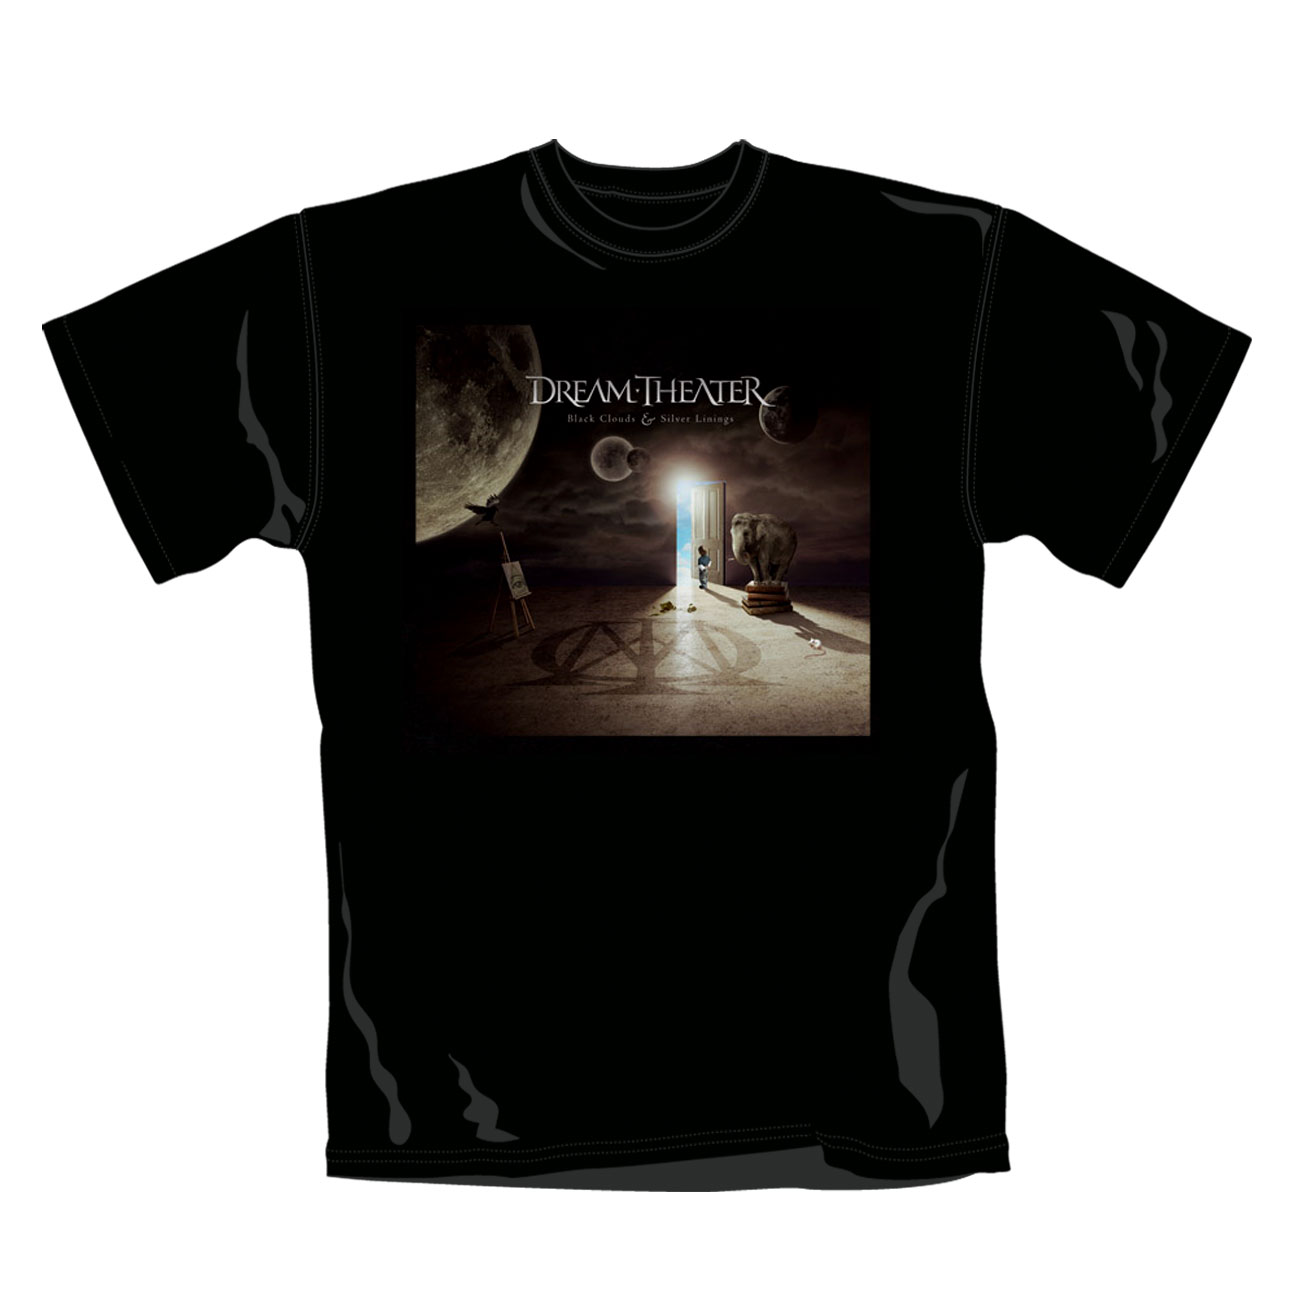 Dream Theater T Shirt Black Clouds. Emi Music officially licensed t-shirt.